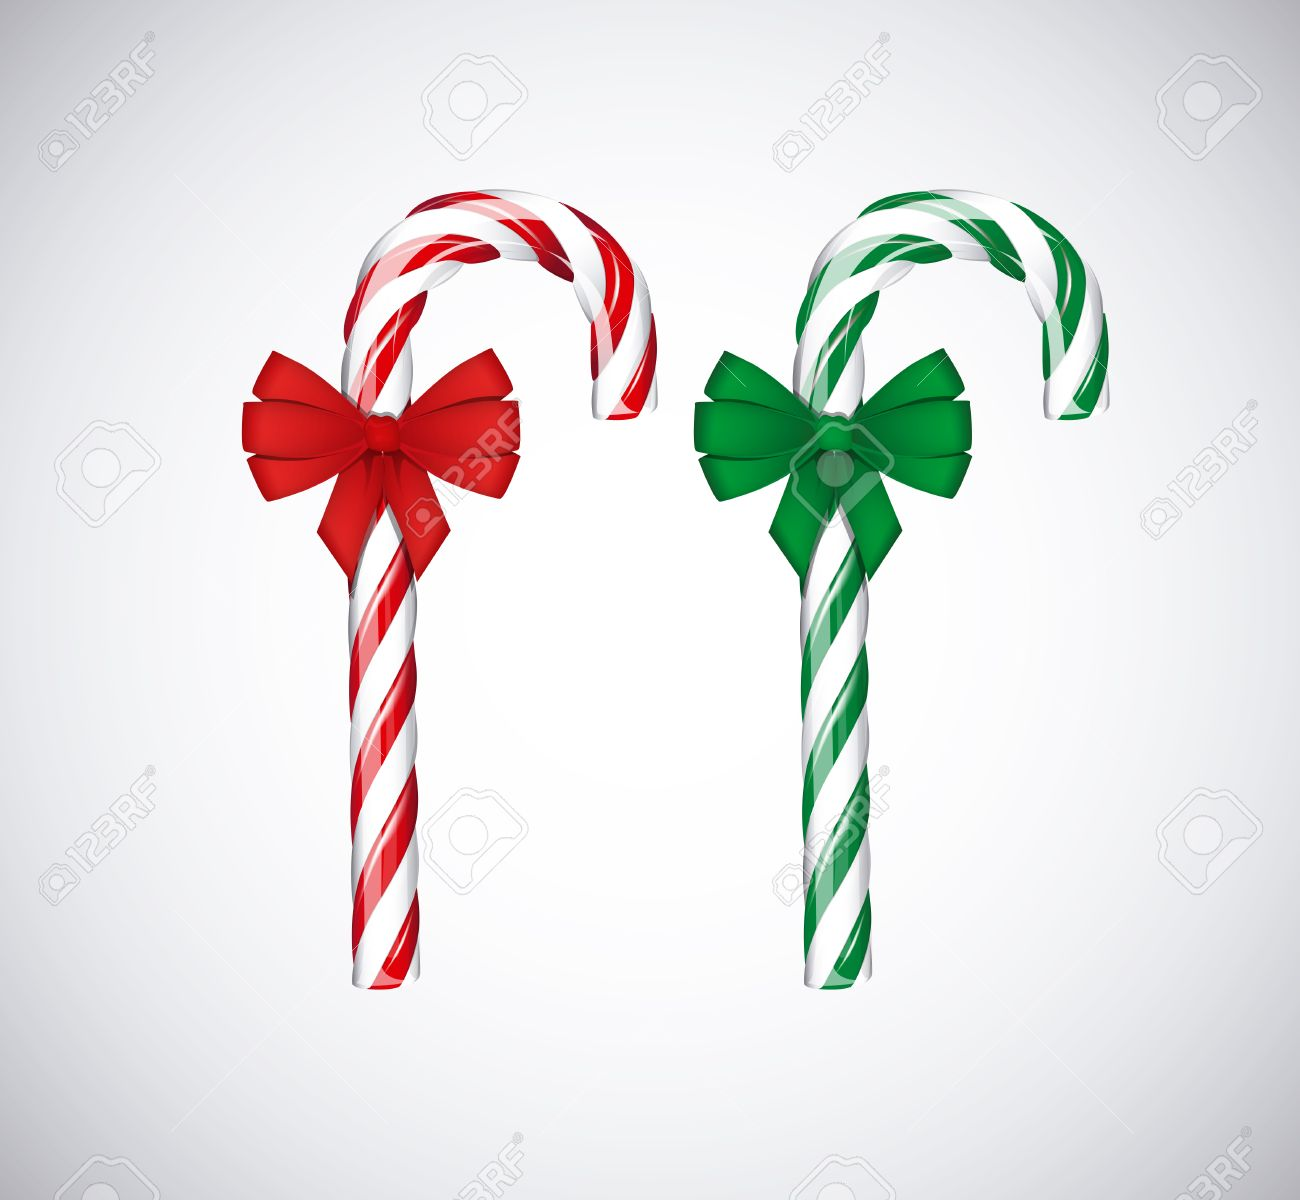 Traditional christmas green and red candy canes with red bow ribbon isolated on white background. - 46577921